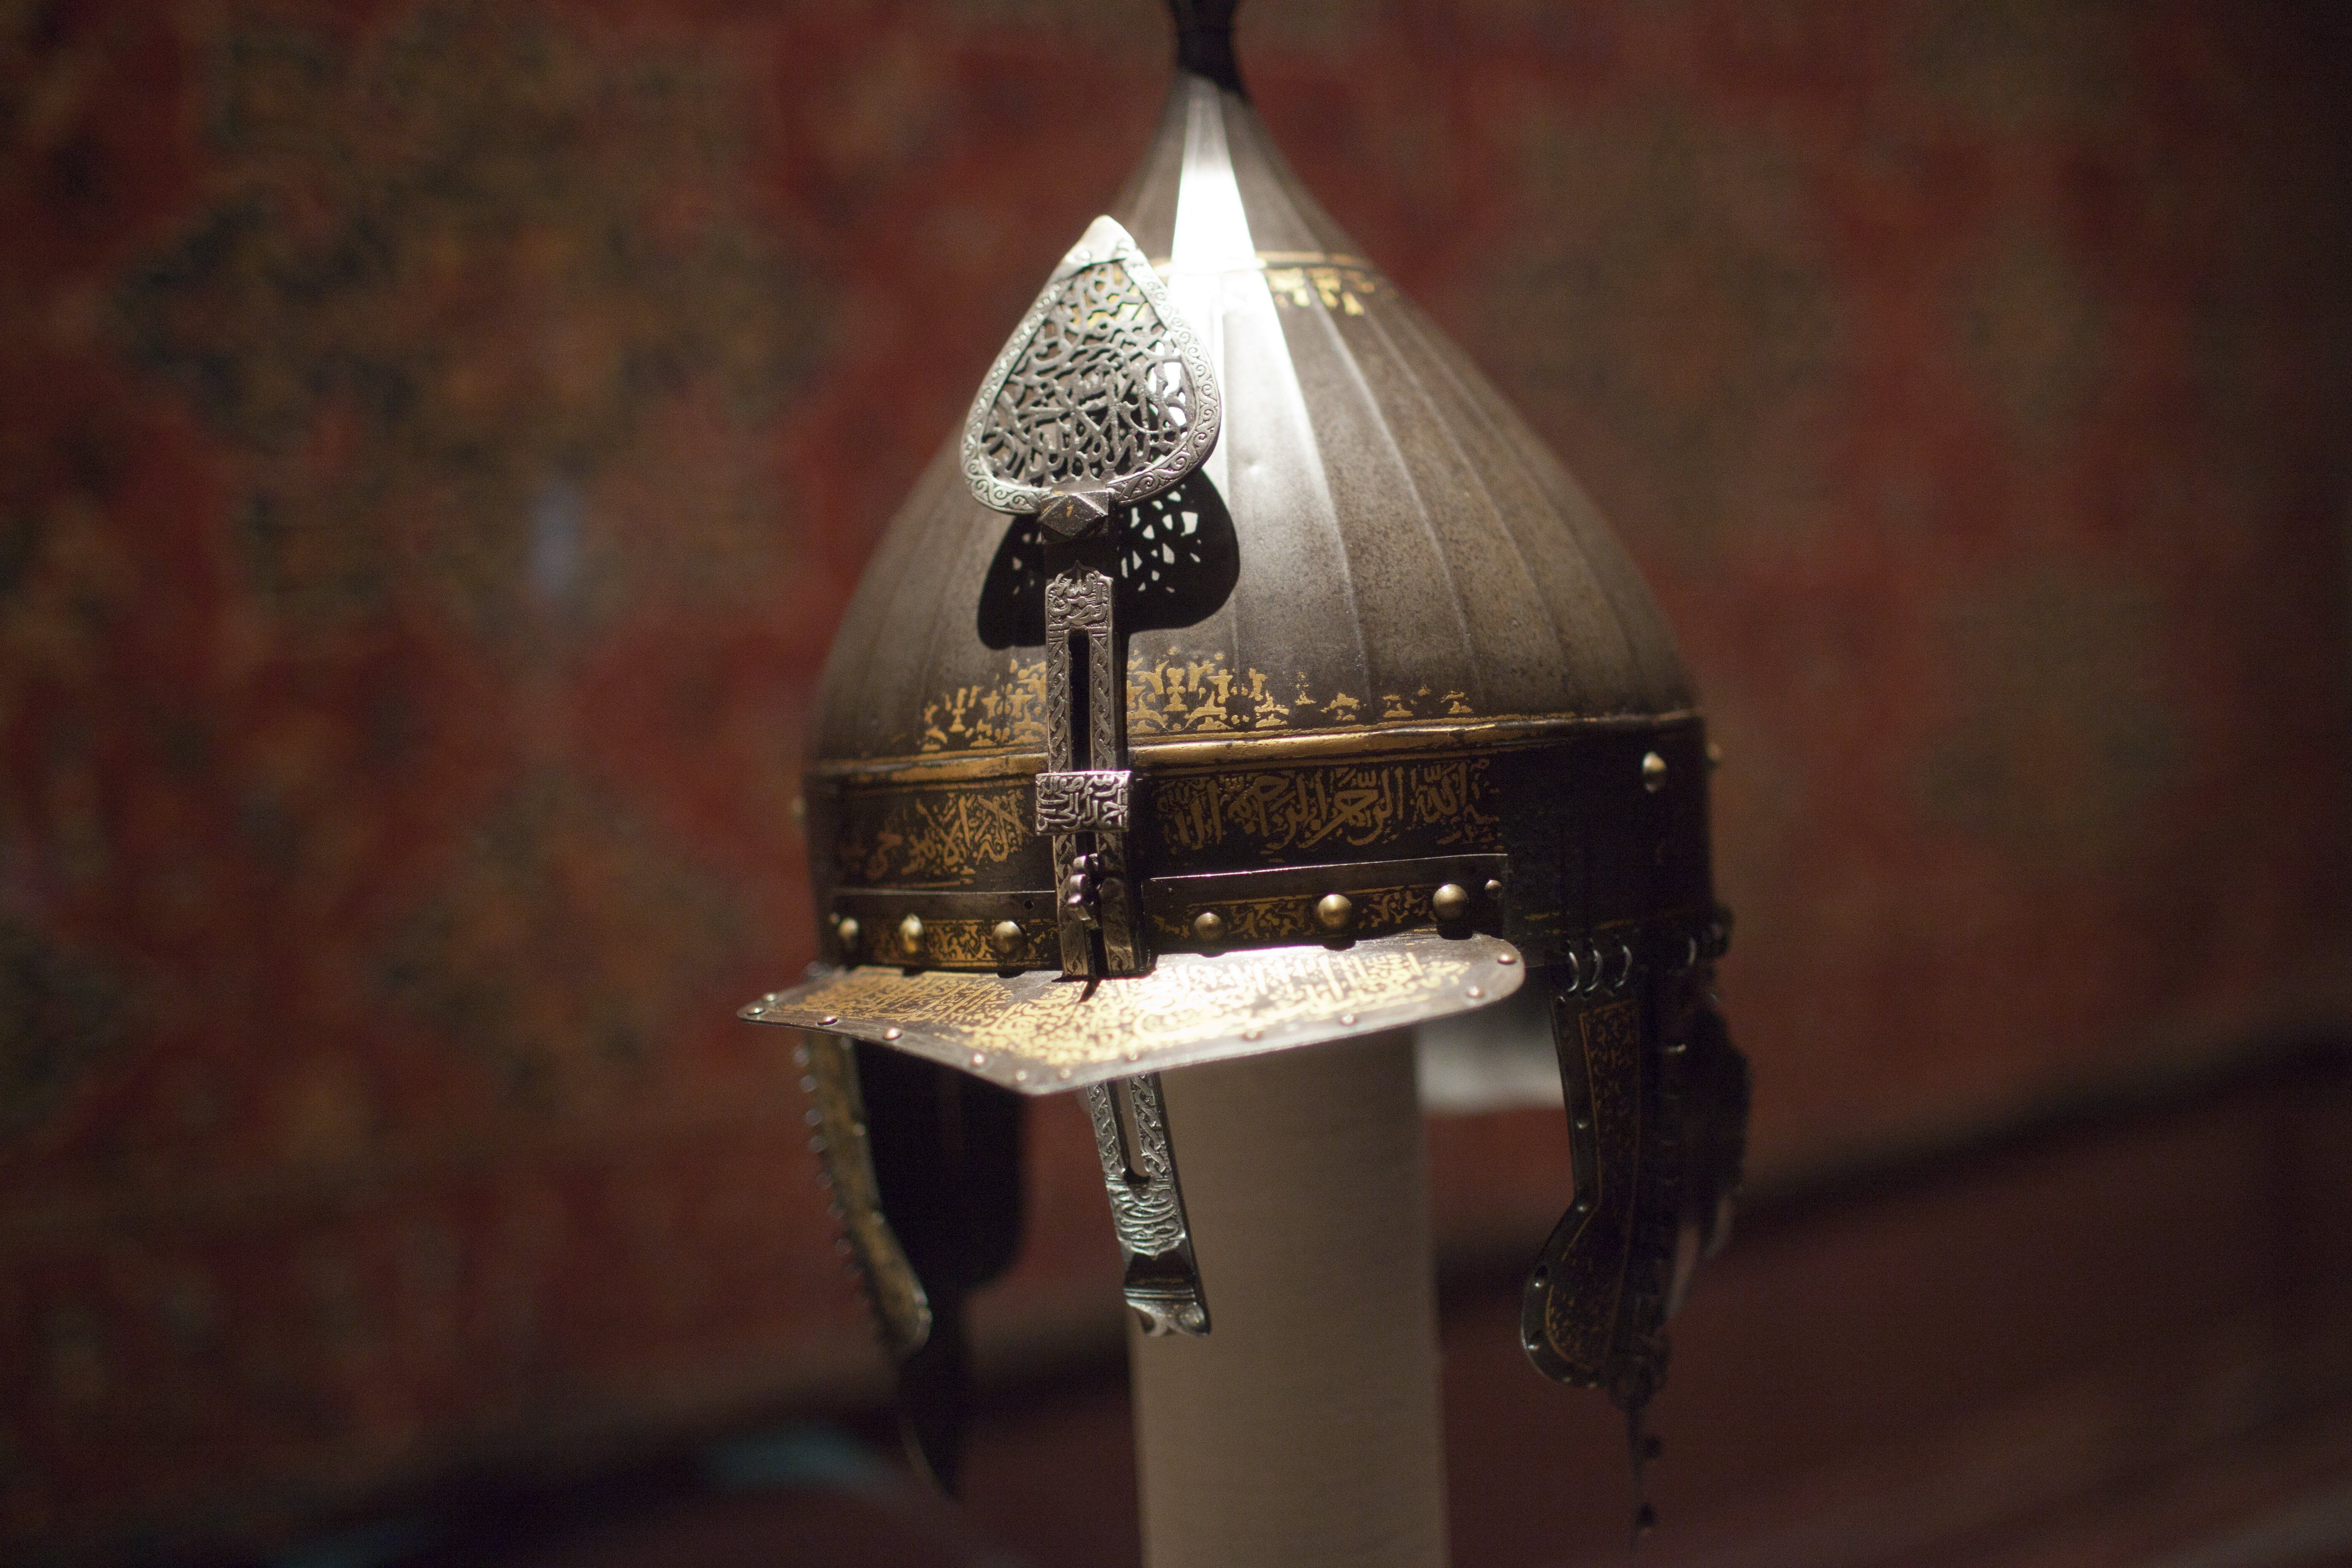 The MET Islamic Art Collection